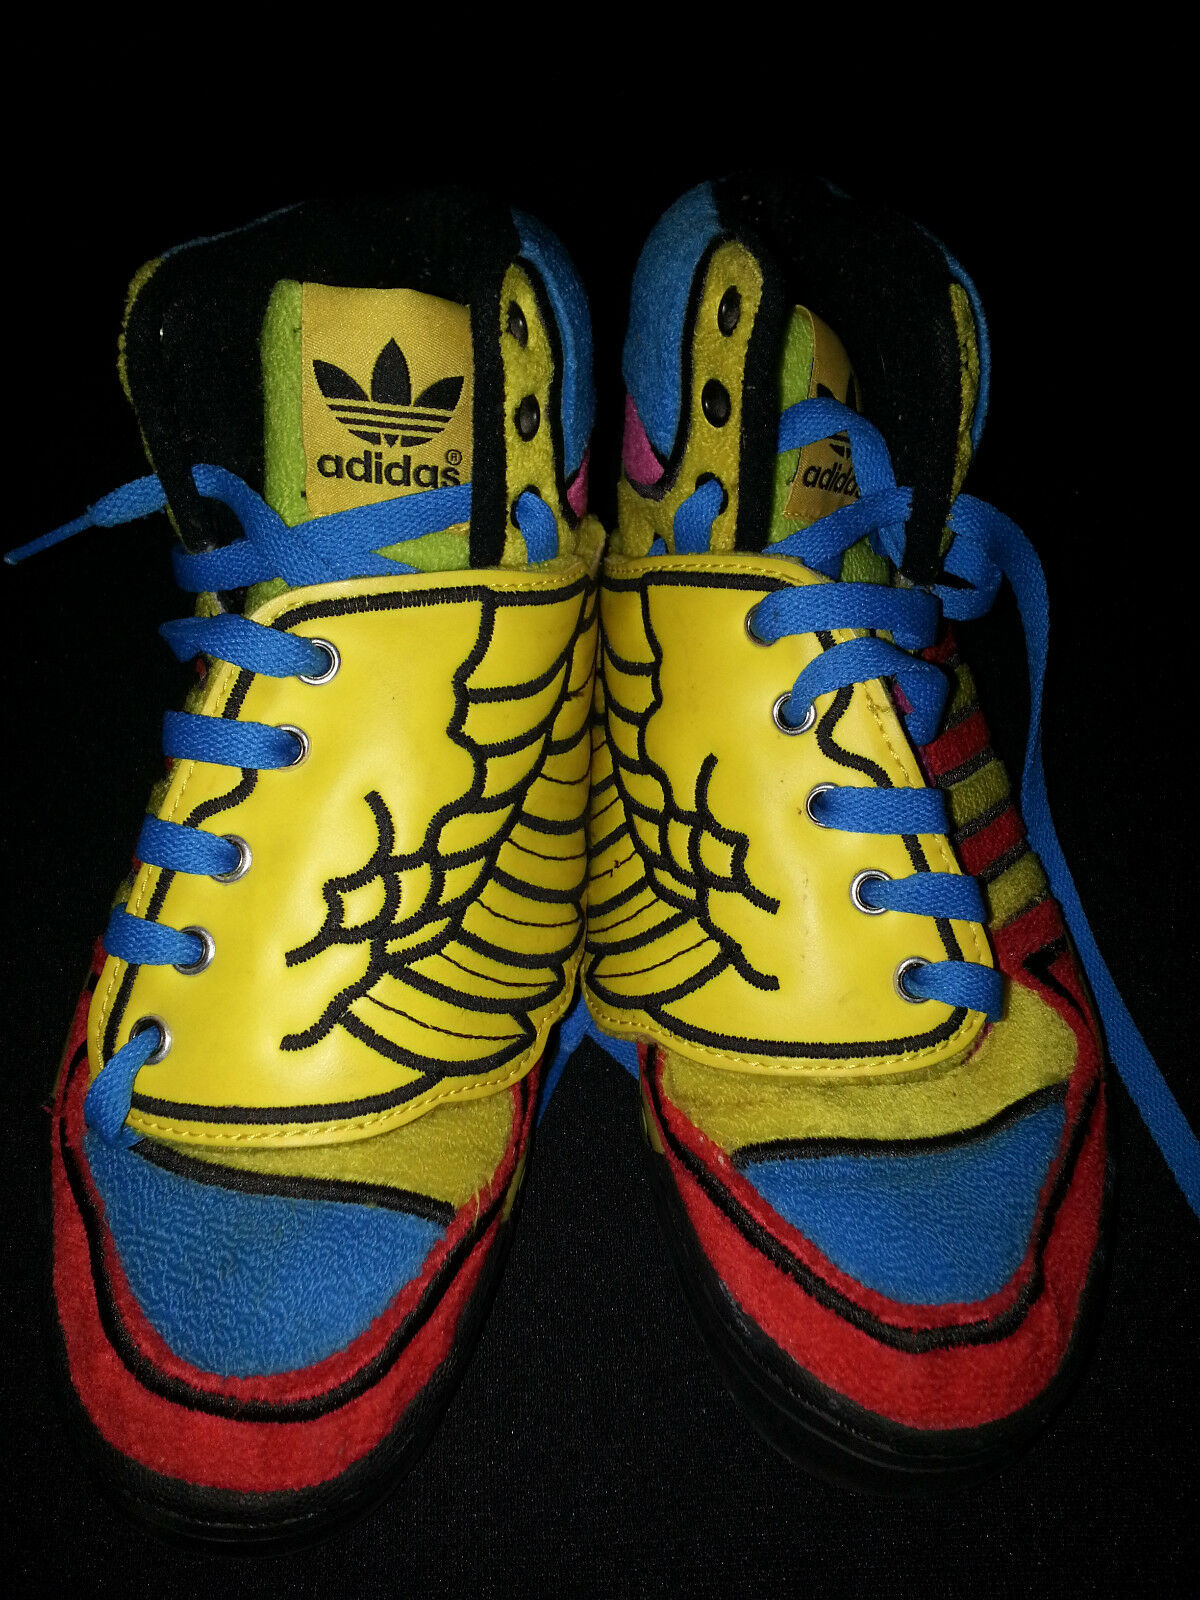 JEREMY SCOTT Adidas Multi-Color Blue Red Wing Sneakers Wings Mens Sz 8 High Top